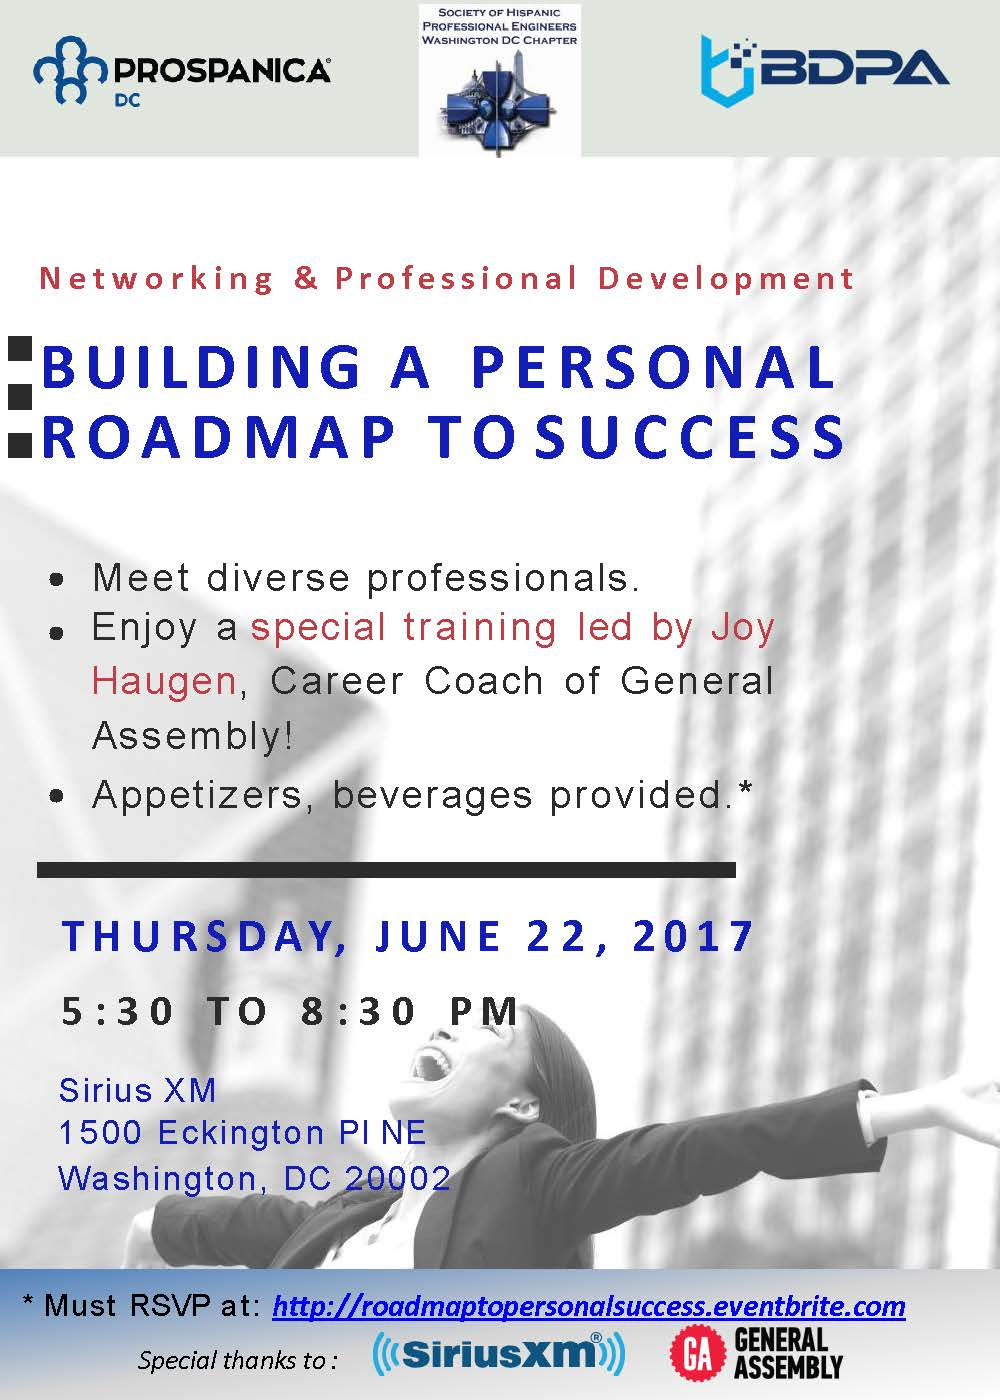 Building a personal Roadmap to Success Event Flyer